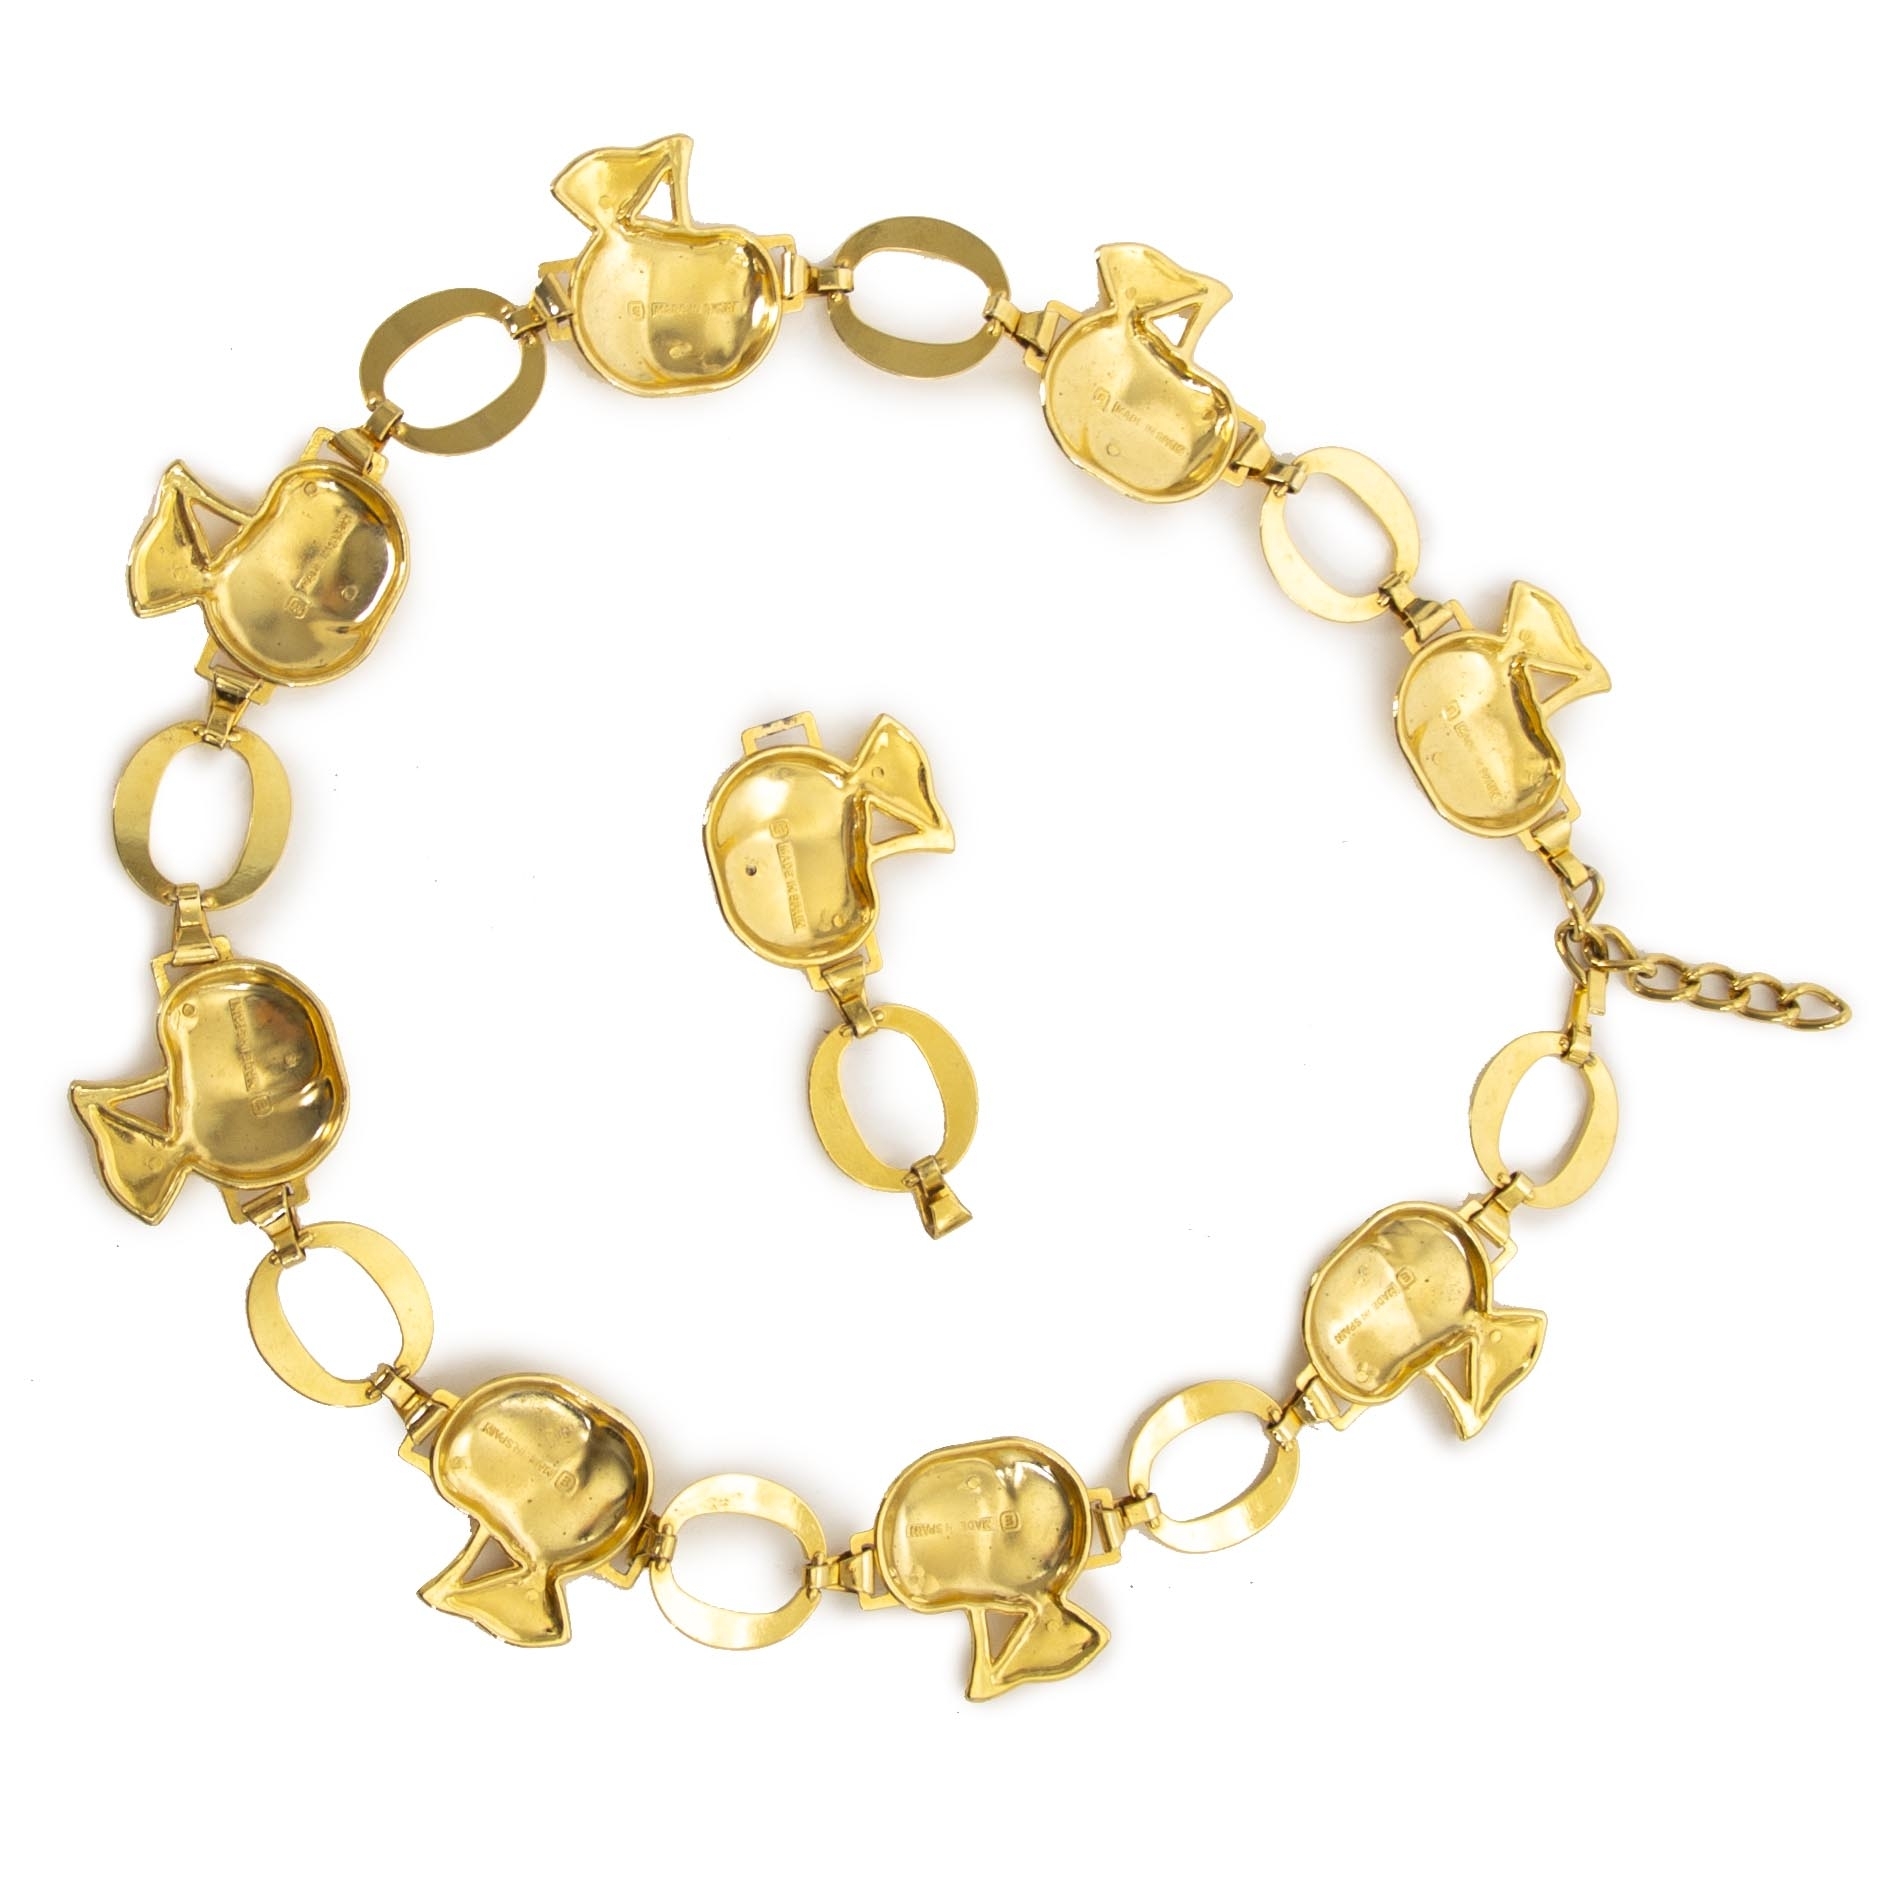 Dolce & Gabbana Gold-Toned Apple Chain Belt now for sale at labellov vintage fashion webshop belgium